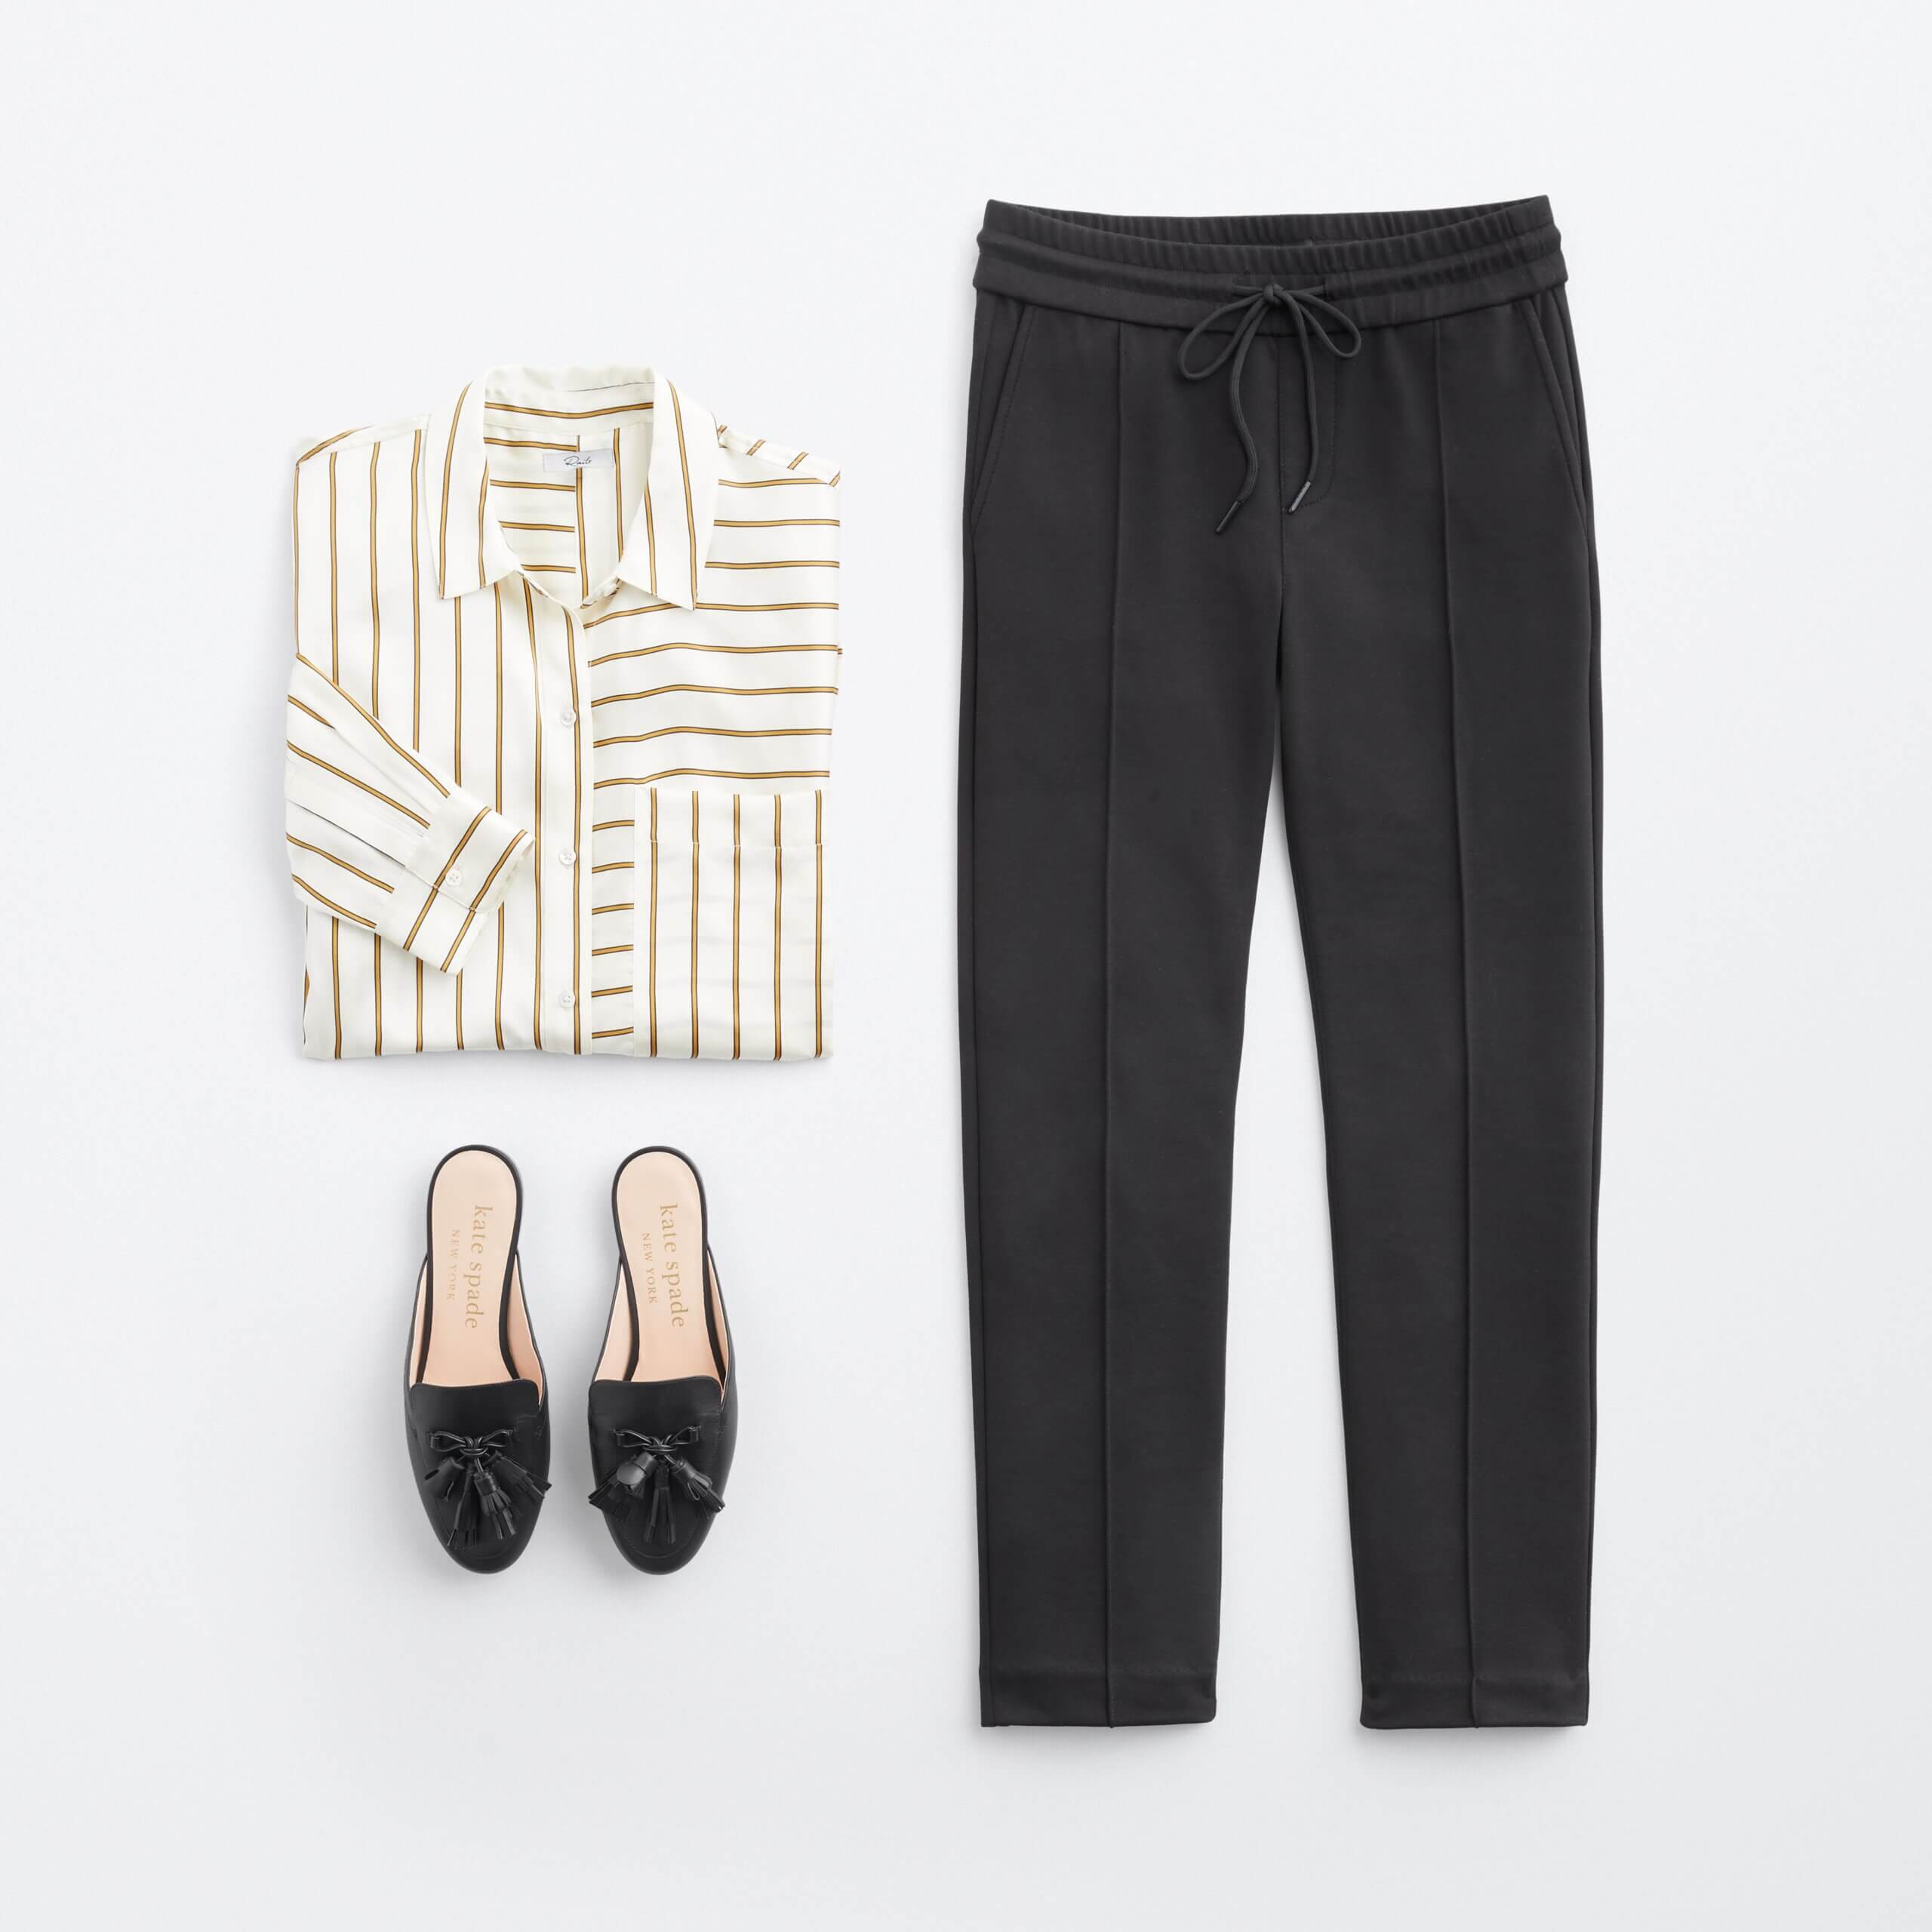 Stitch Fix Women's outfit laydown featuring white silk button-down blouse with gold striped, black ankle-length trousers and black leather flats.